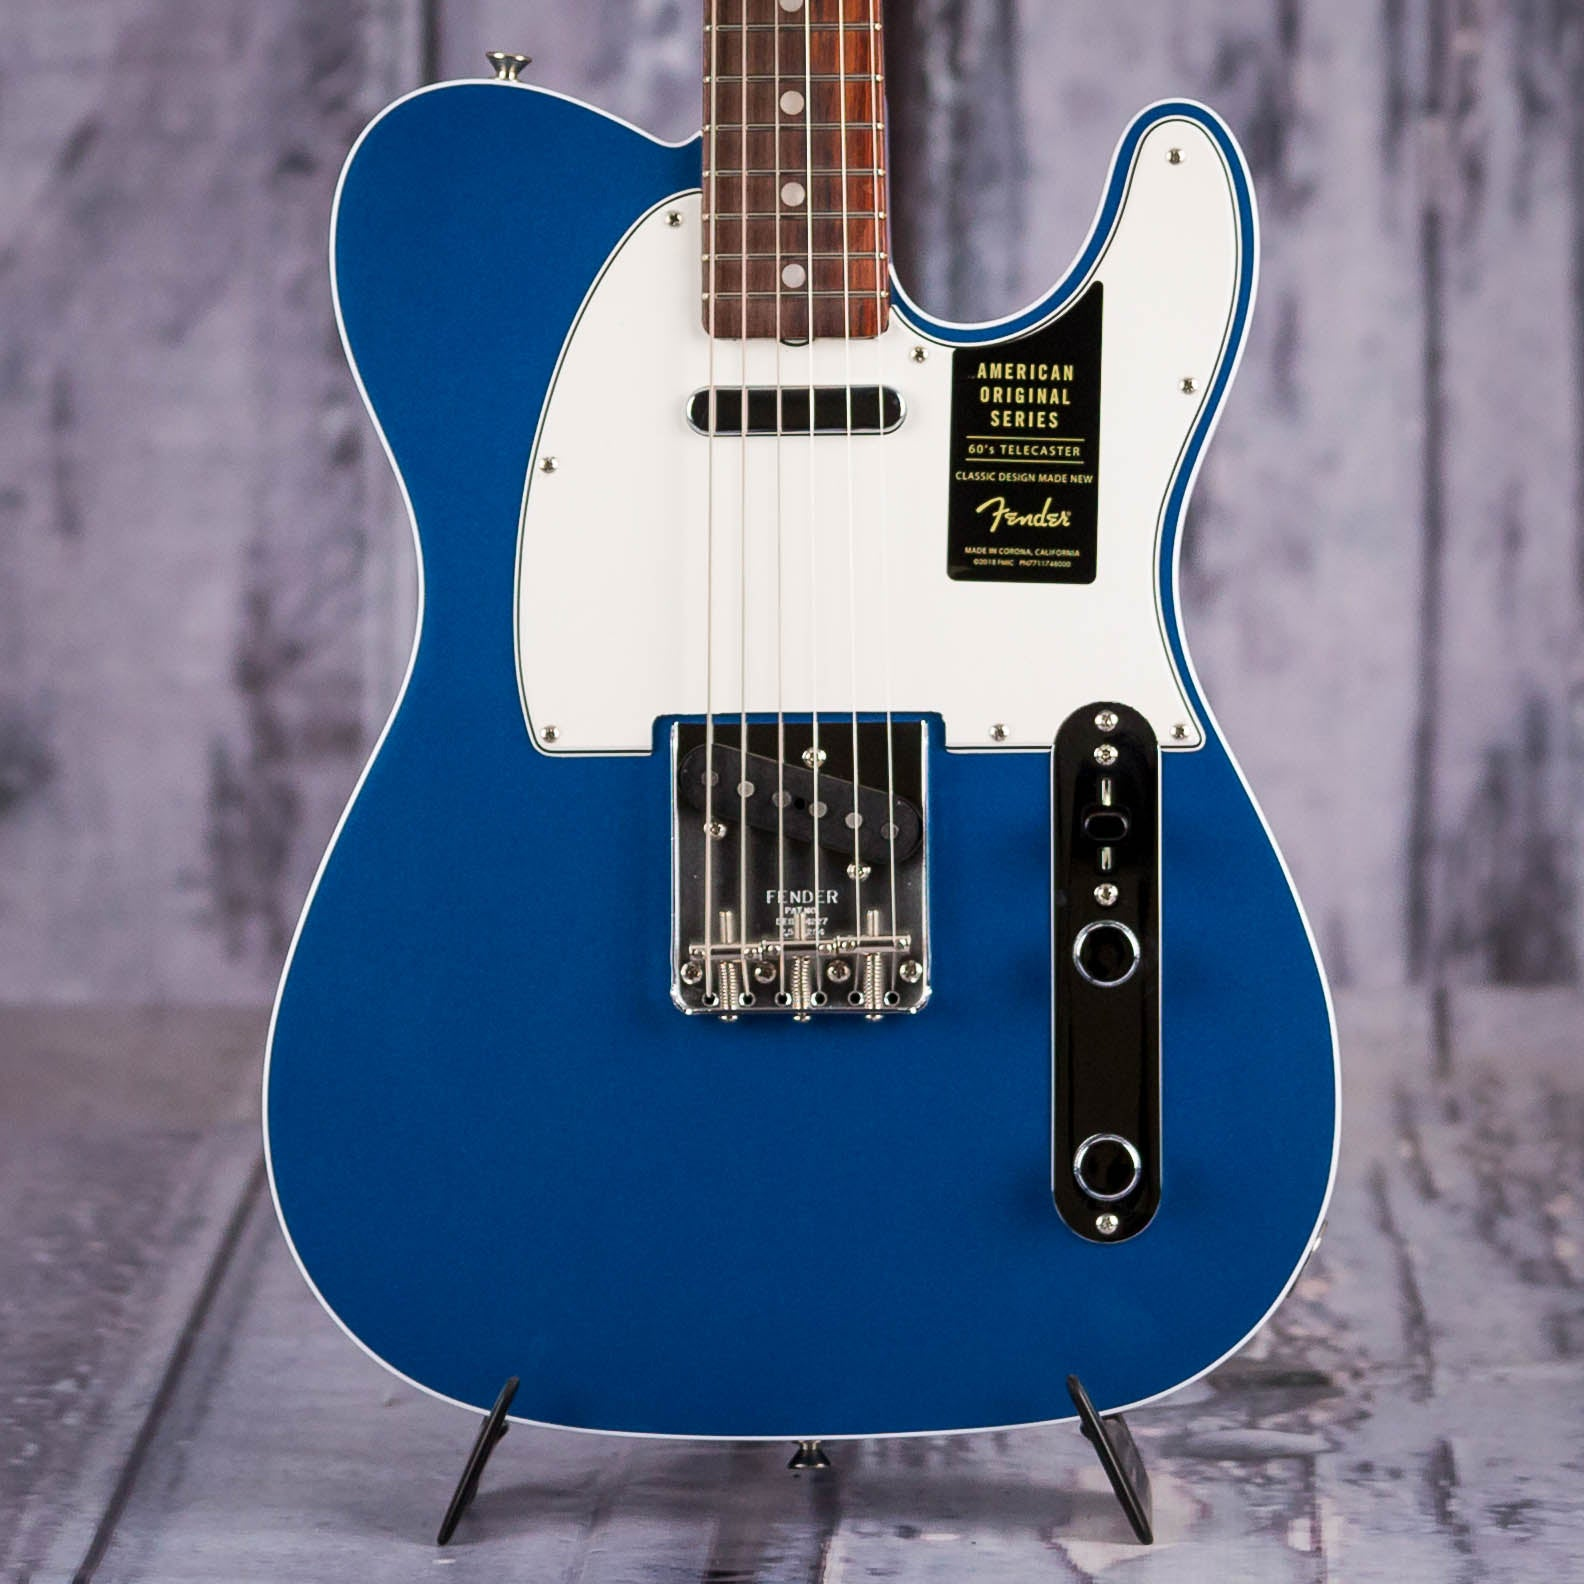 fender american original 39 60s telecaster lake placid blue for sale replay guitar. Black Bedroom Furniture Sets. Home Design Ideas